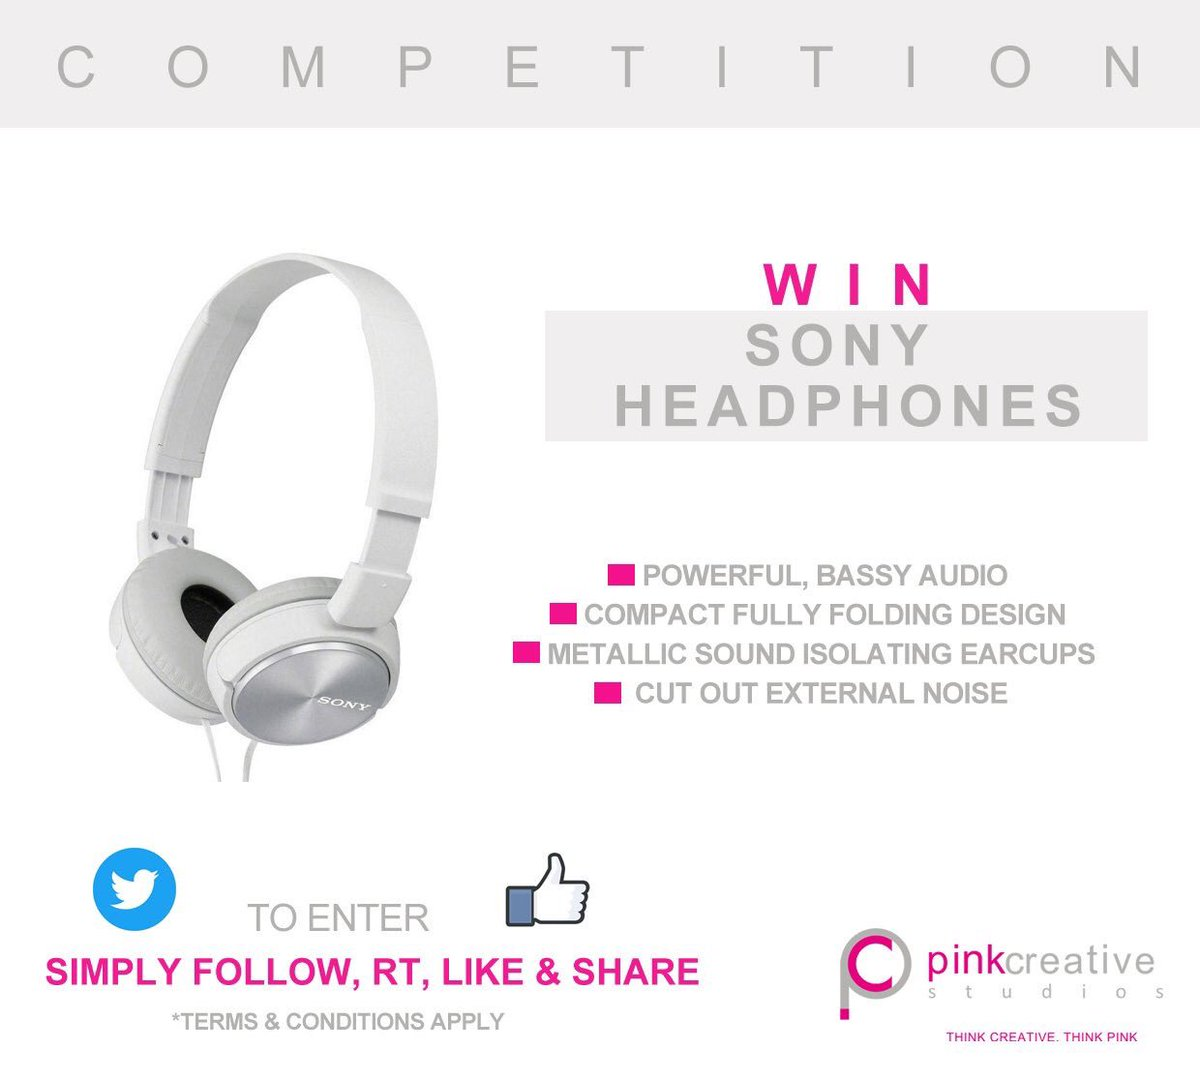 #Win #Sony Headphones. To enter Follow #RT, Like &amp; Share on #Facebook  http:// bit.ly/2sj0ZRe  &nbsp;    #Competition #giveaway #comp #Retweet #free <br>http://pic.twitter.com/YNJ7LkxV2Y